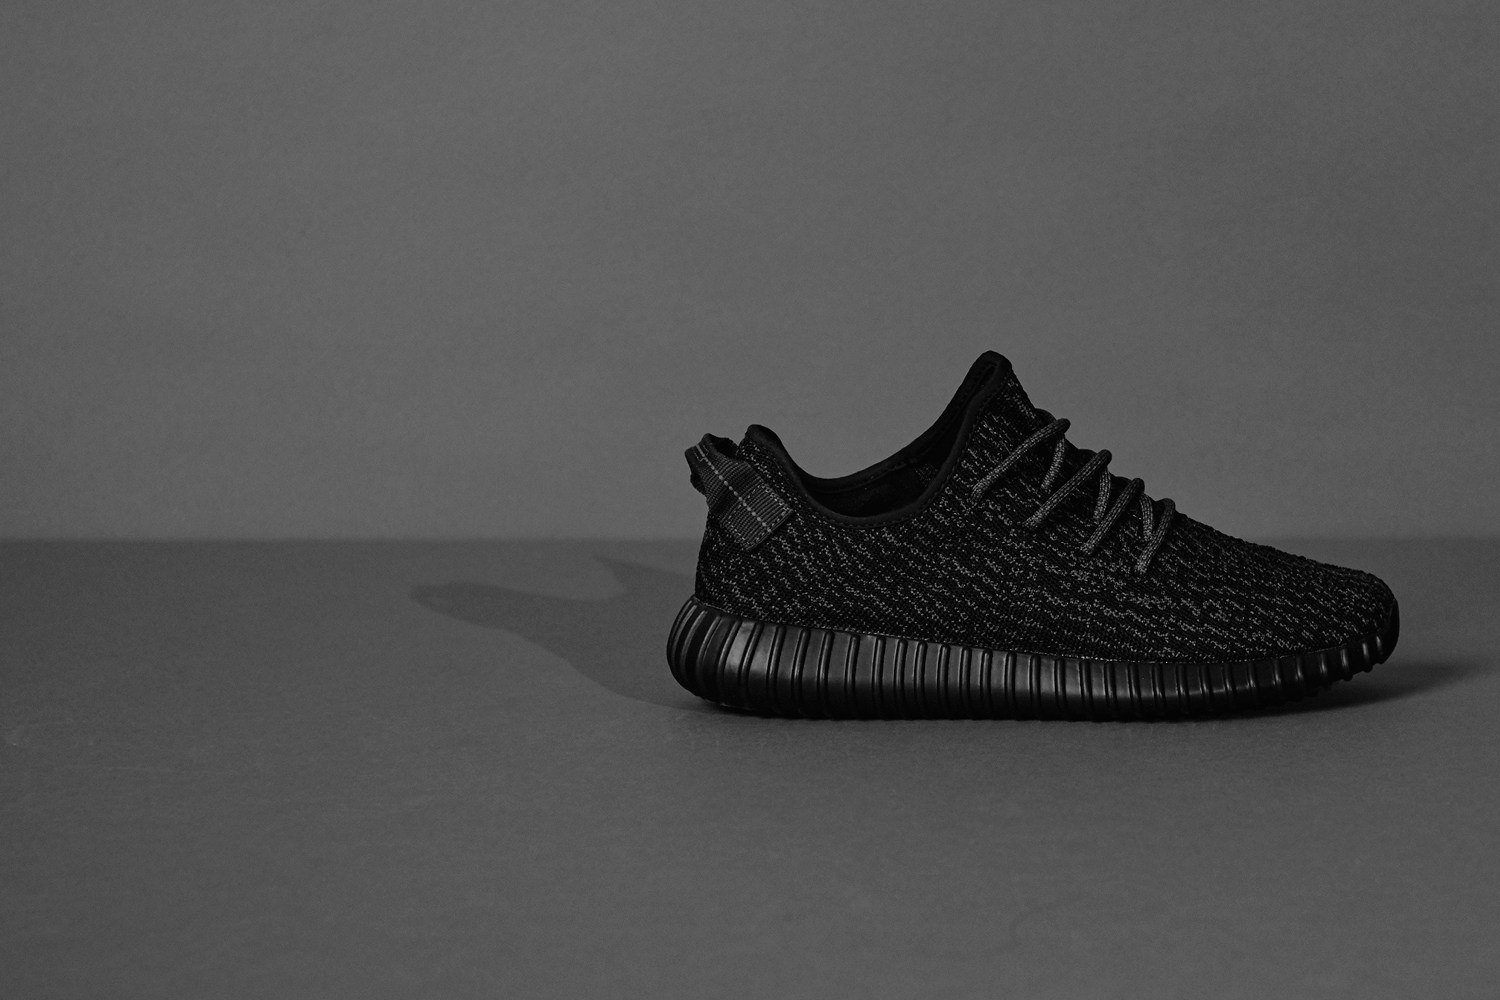 Adidas Yeezy 350 V 2 Boost Core Black / Oreo Legit Check